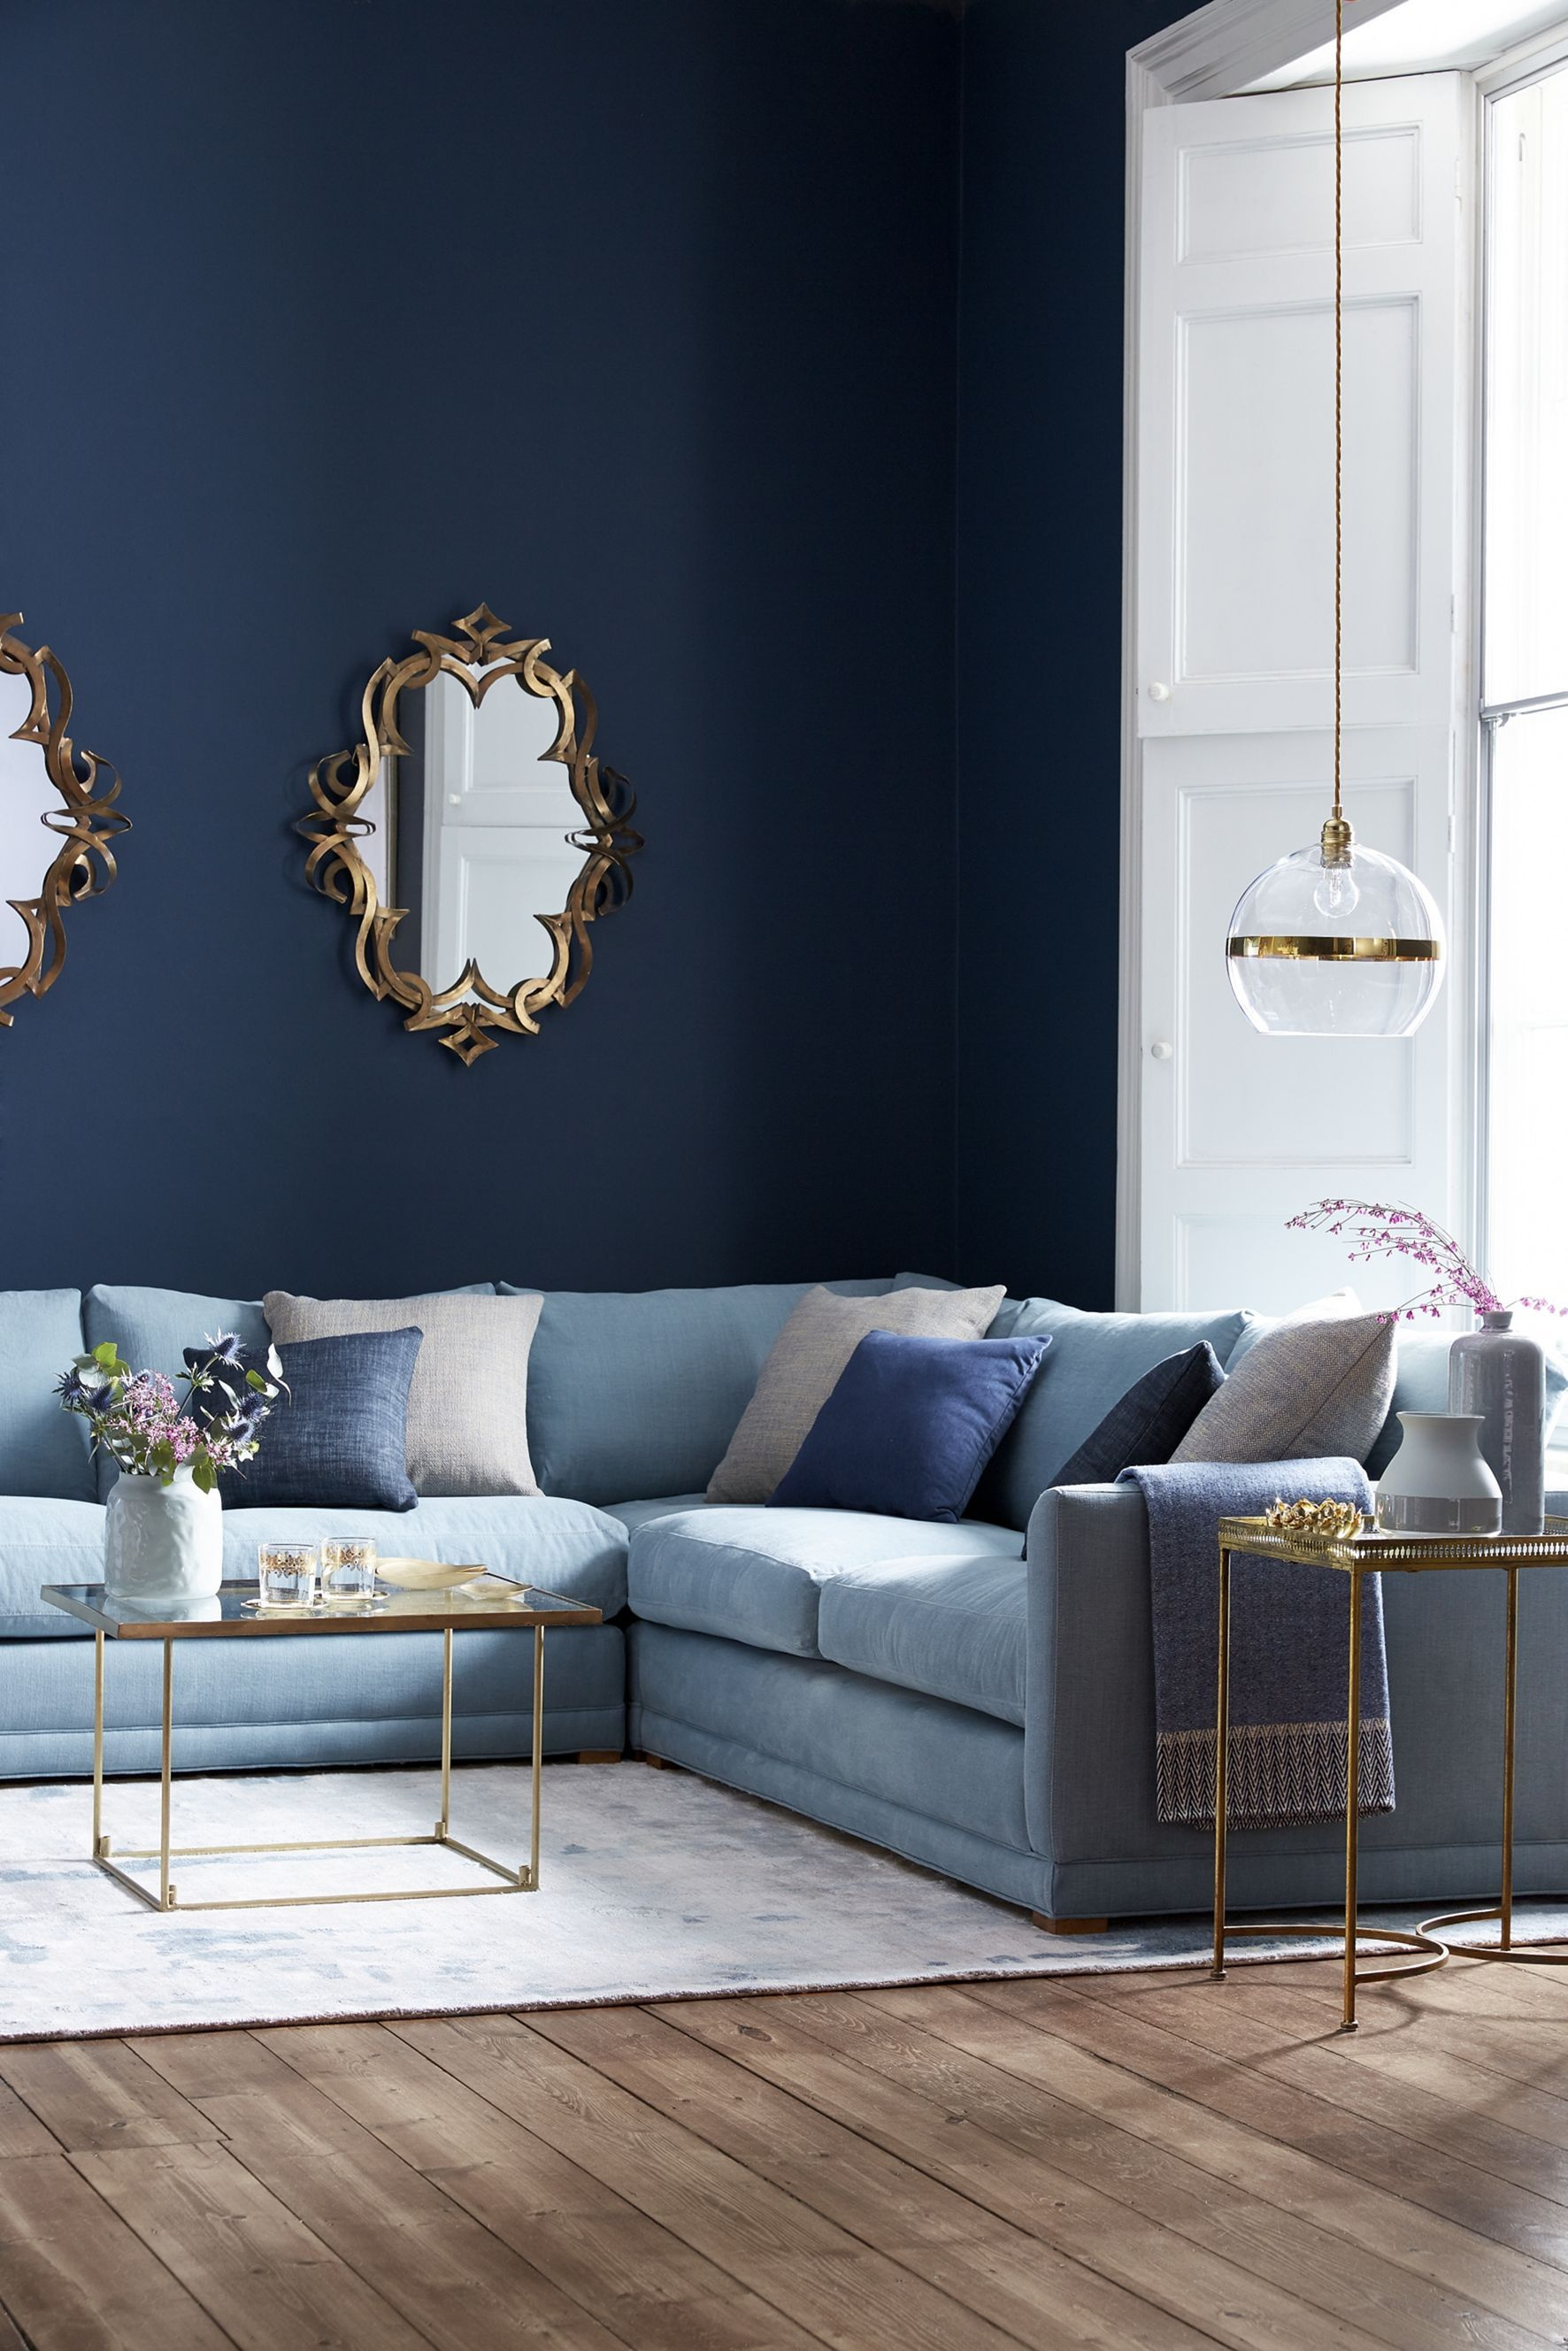 12 Attractive And Comfortable Sofa Designs To Apply At Your Home Blue Sofas Living Room Blue Living Room Decor Blue Sofa Living